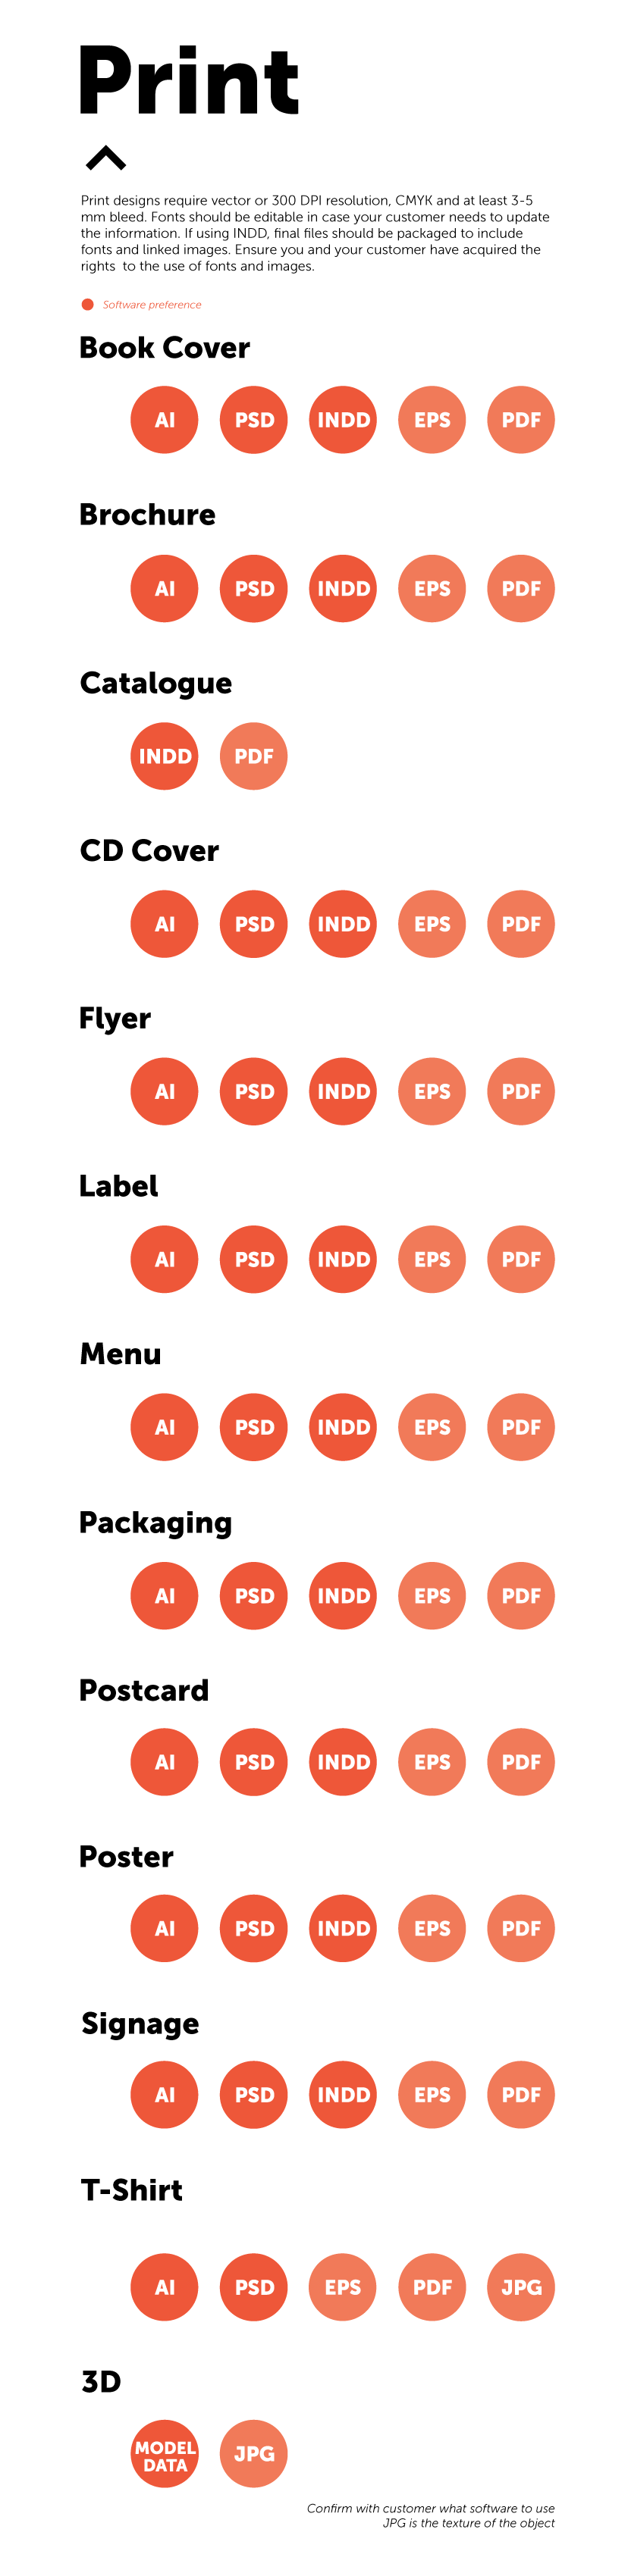 Guide to design file formats and deliverables for Design source